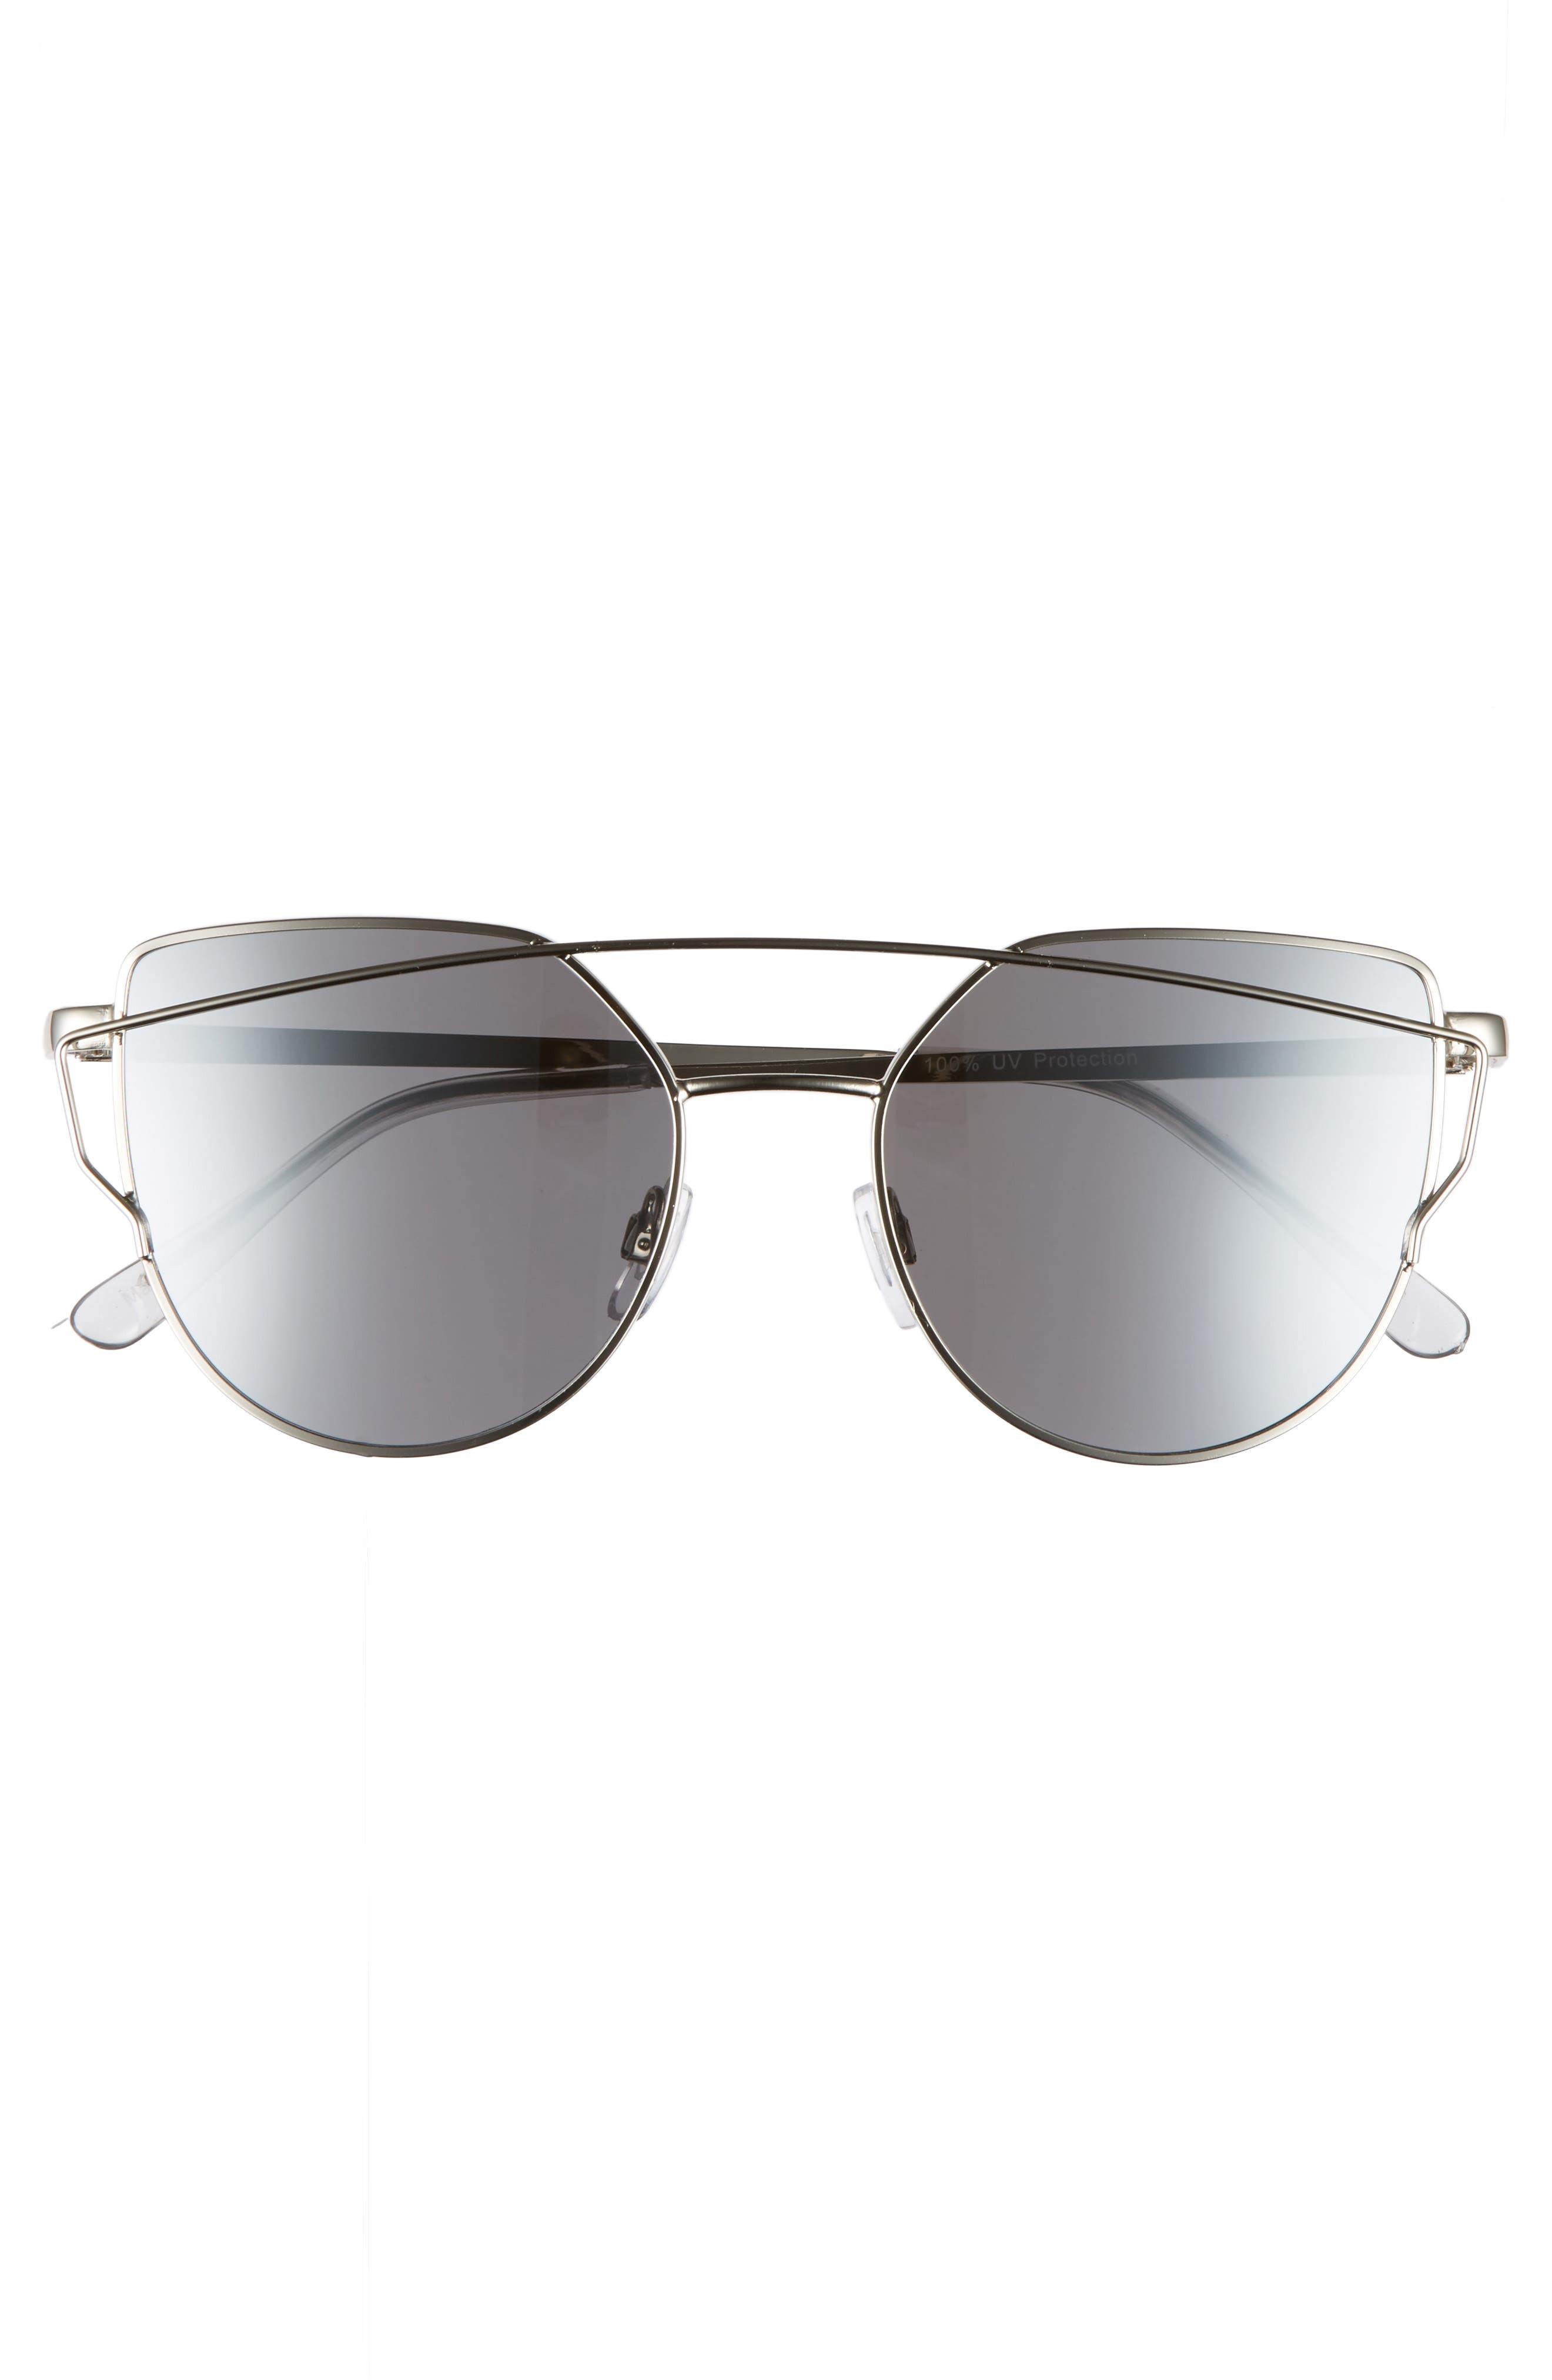 51mm Thin Brow Angular Aviator Sunglasses,                             Alternate thumbnail 17, color,